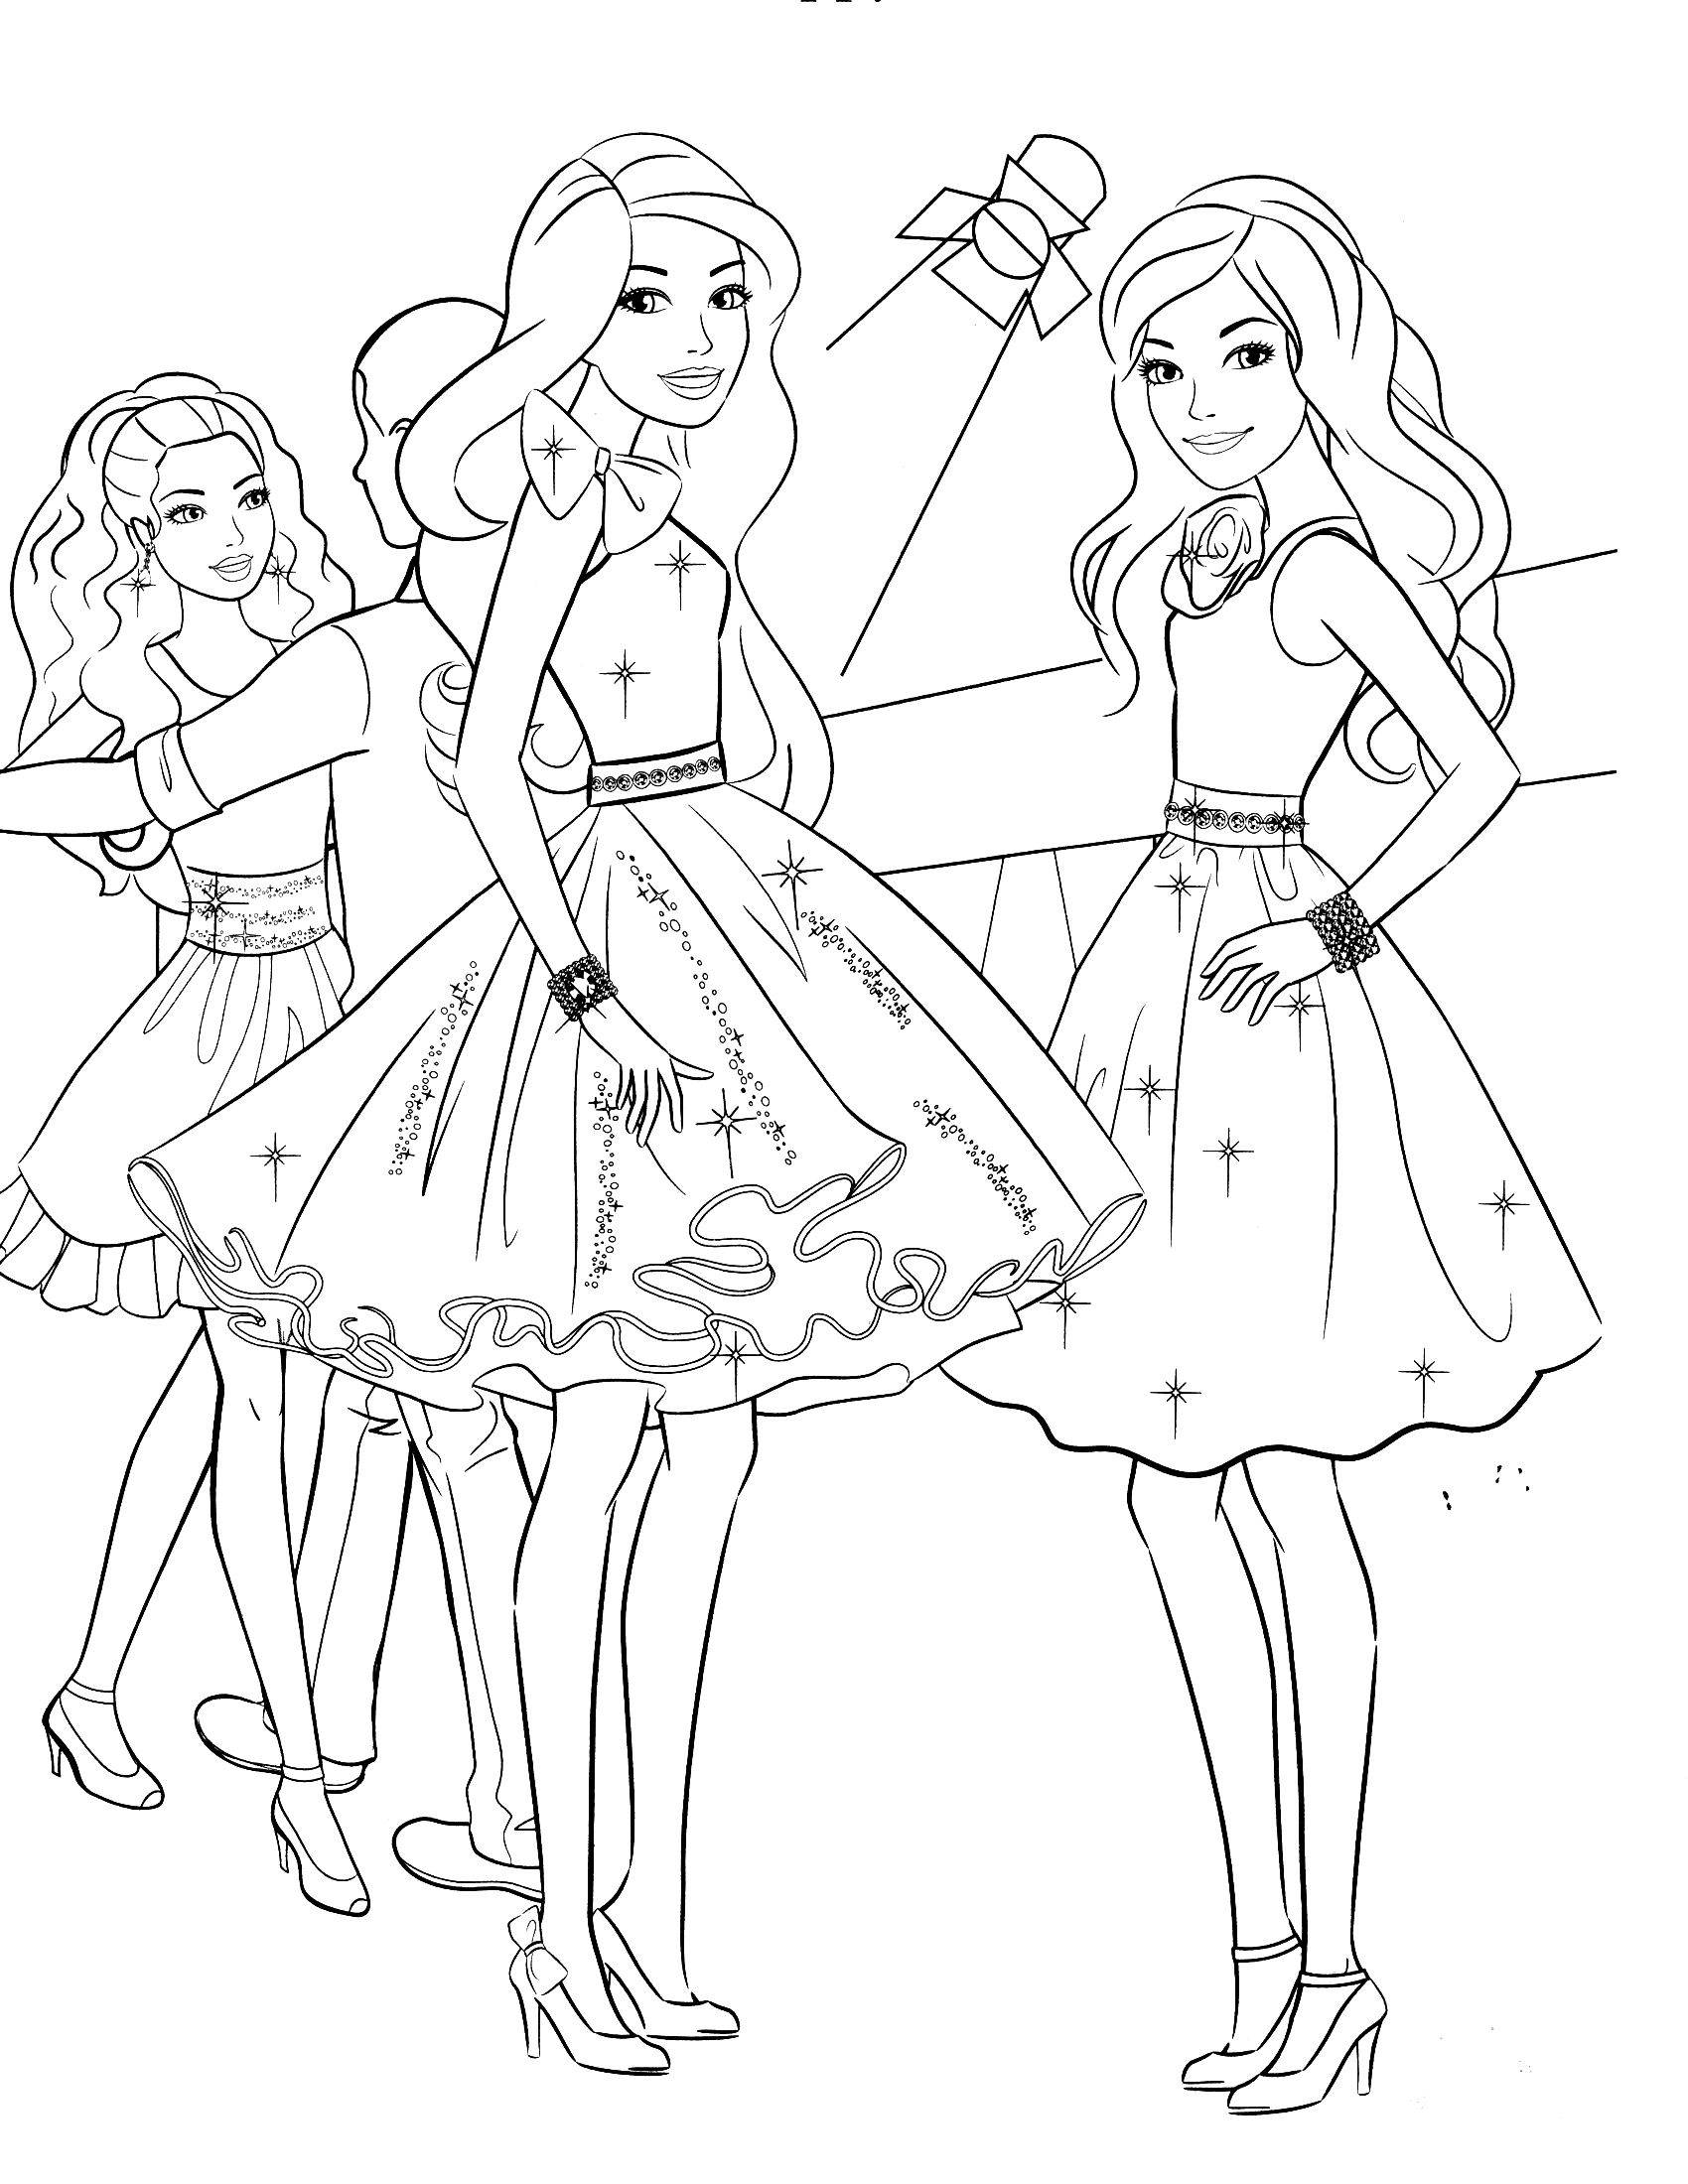 barbie coloring pages  Googlesgning  Coloring  Pinterest